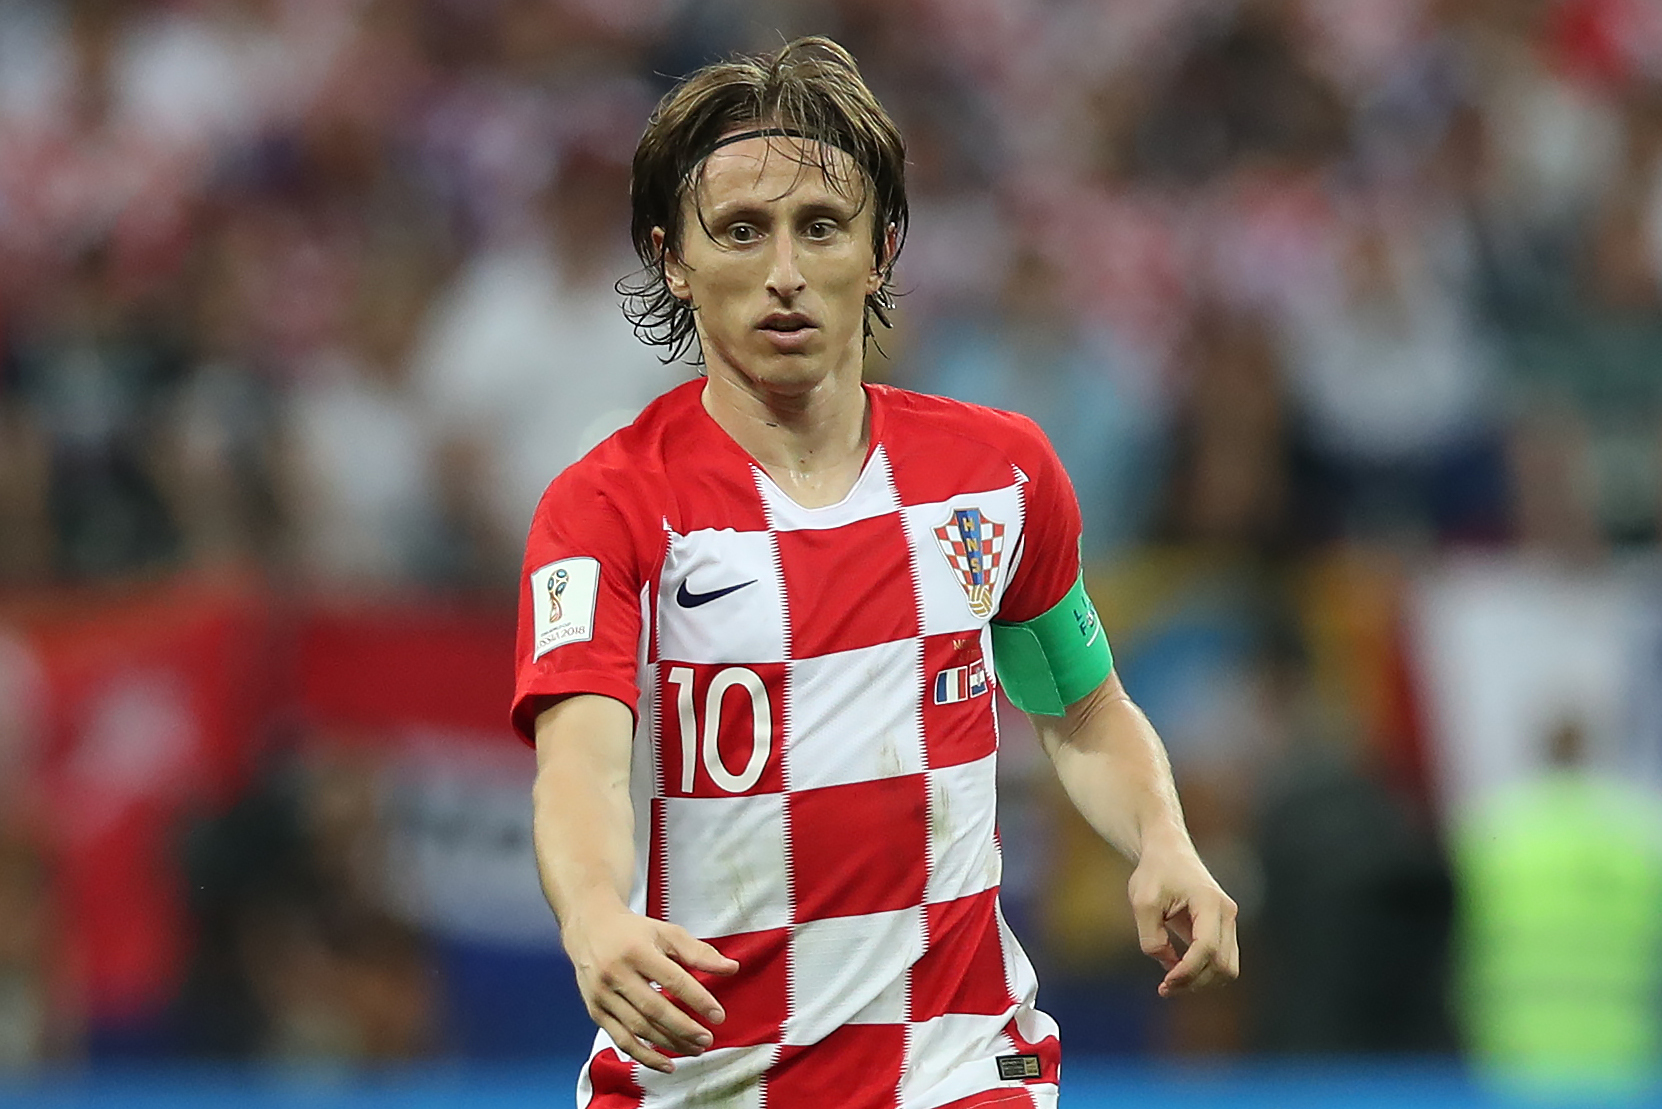 Portugal Vs Croatia Time Live Stream Tv Schedule And Odds Bleacher Report Latest News Videos And Highlights Replay of this fantastic football game. portugal vs croatia time live stream